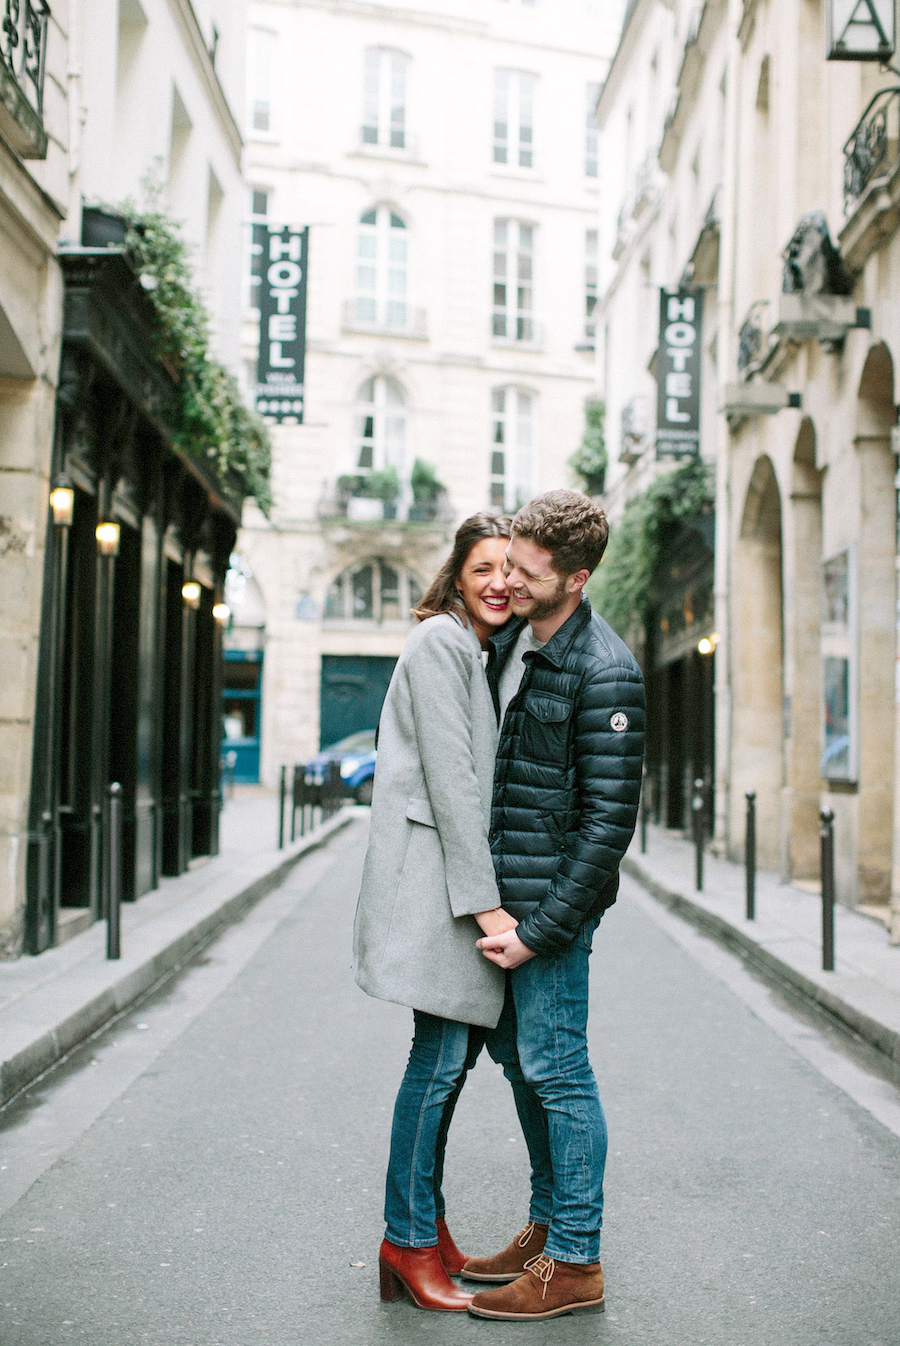 saya-photography-pre-wedding-couple-engagement-paris-quartier-latin-23.jpg